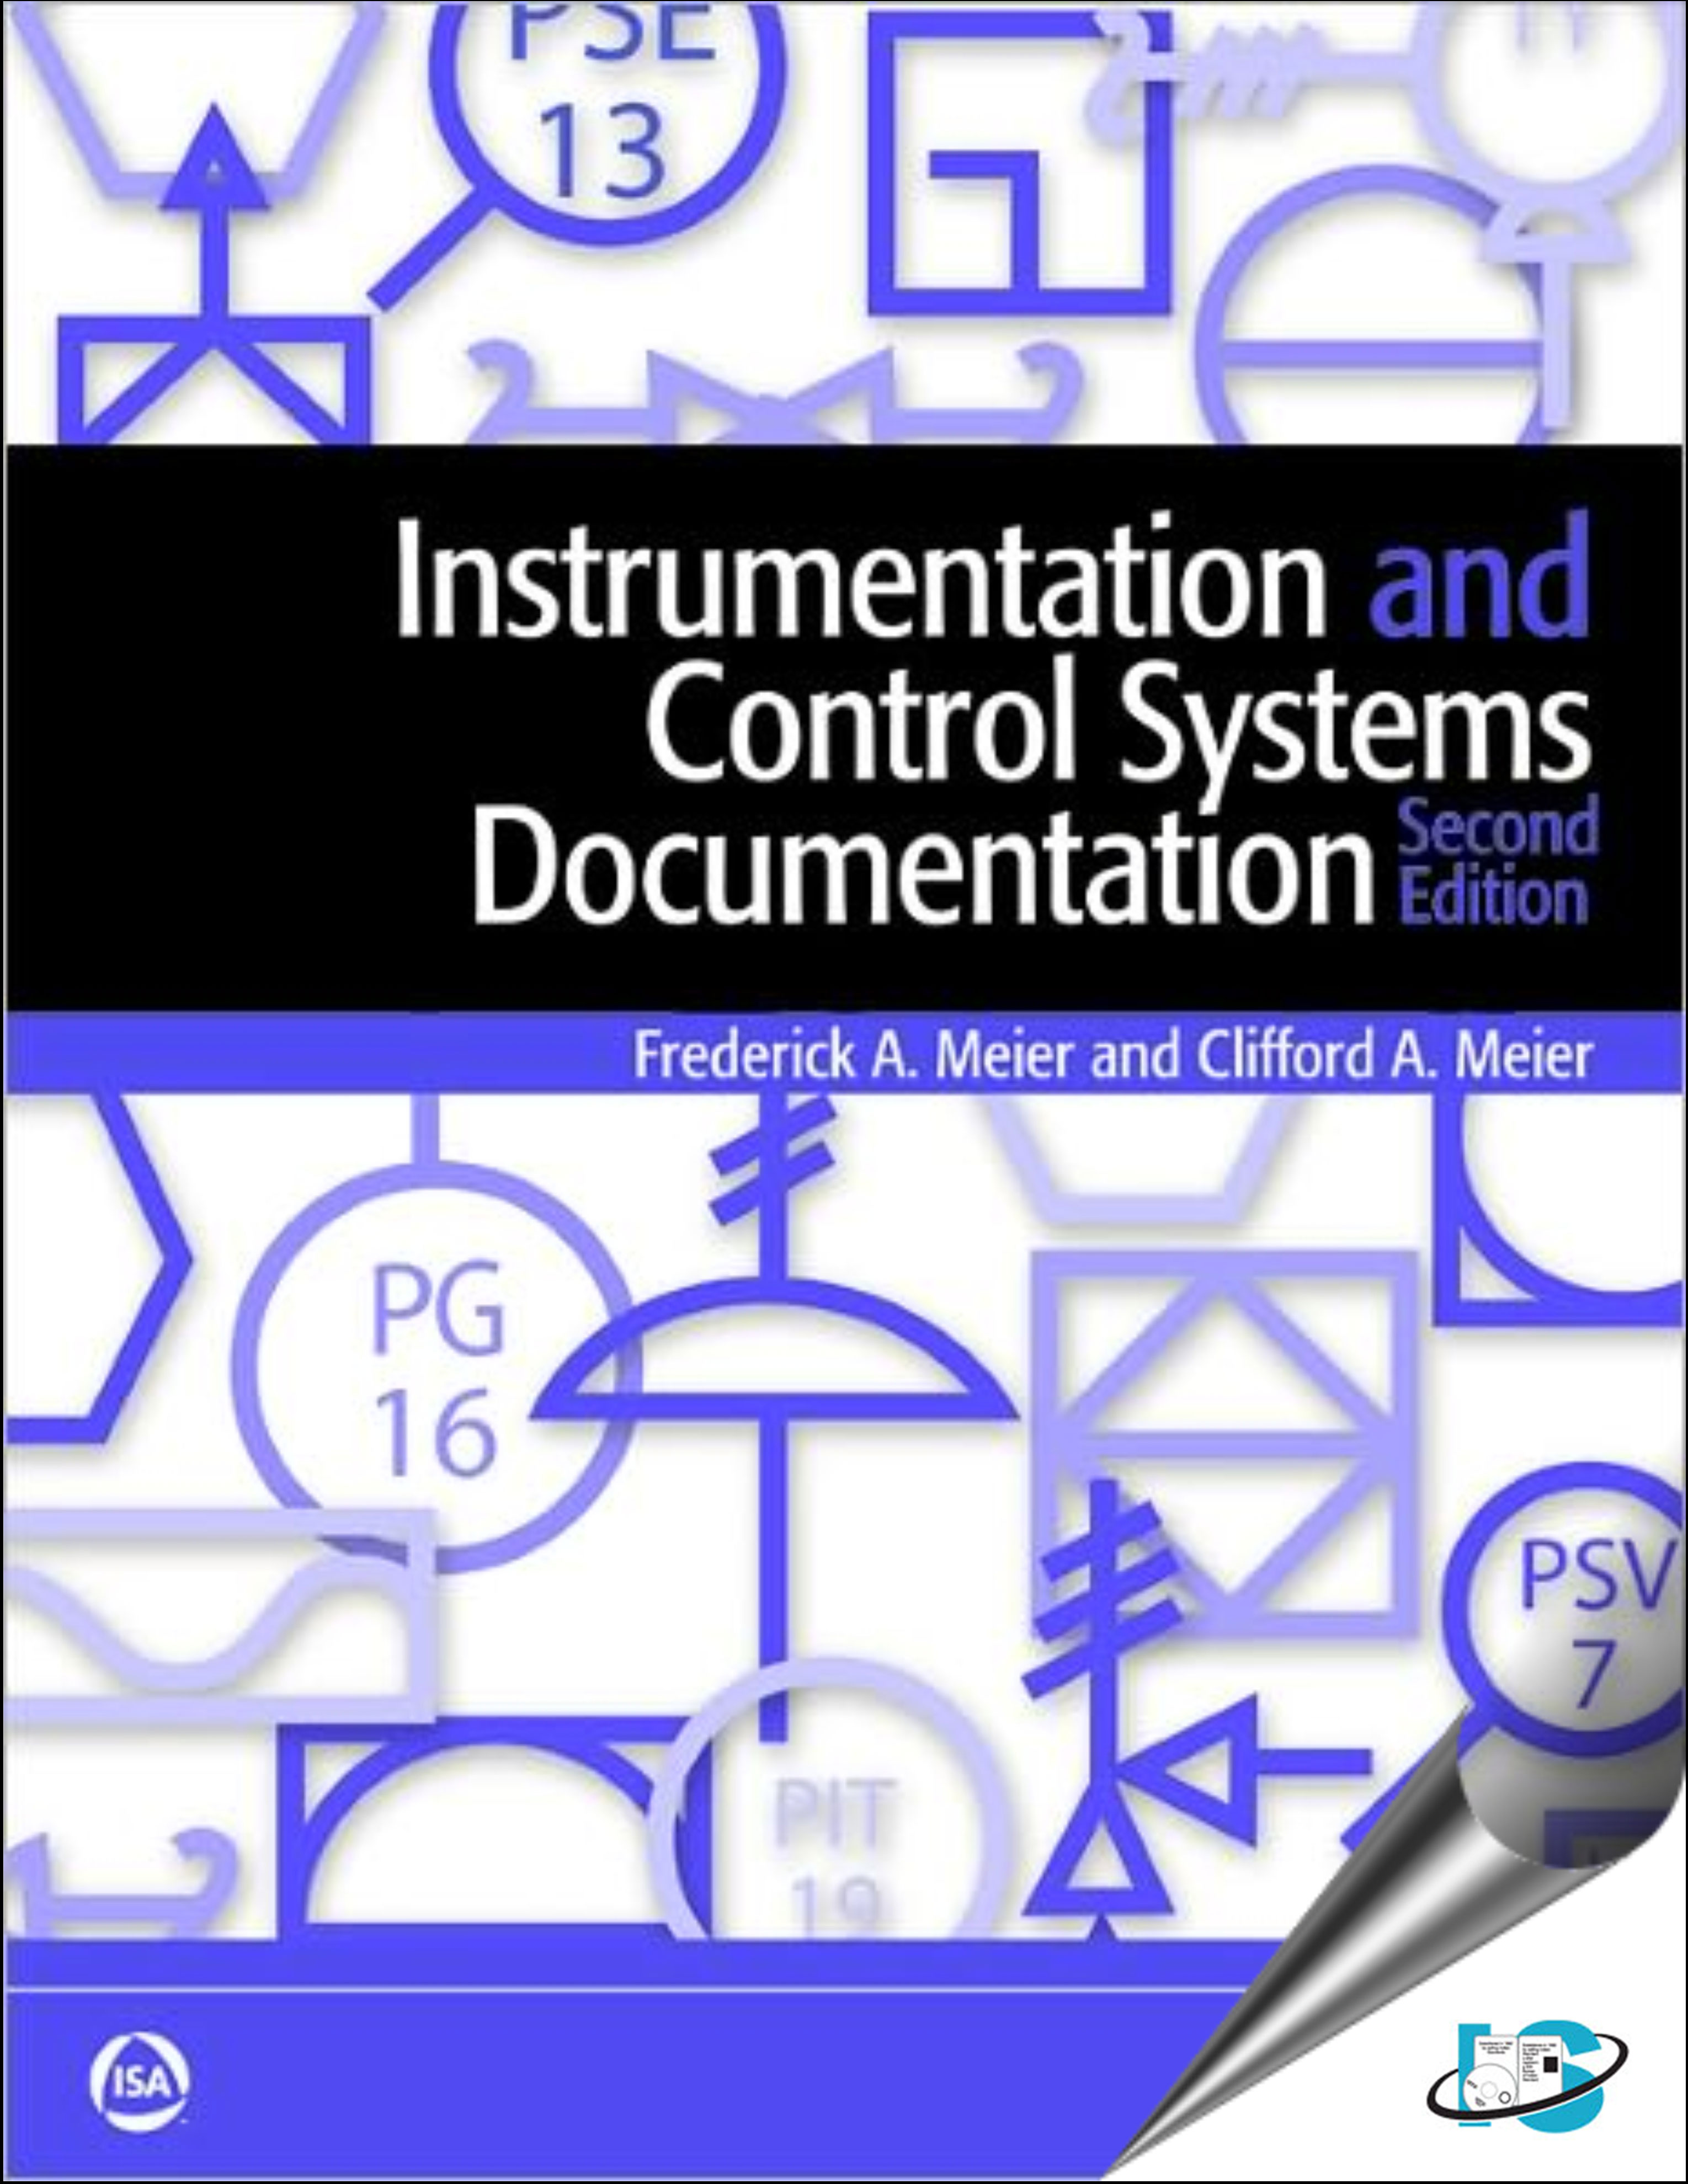 instrumentation and control systems documentation second edition pdf